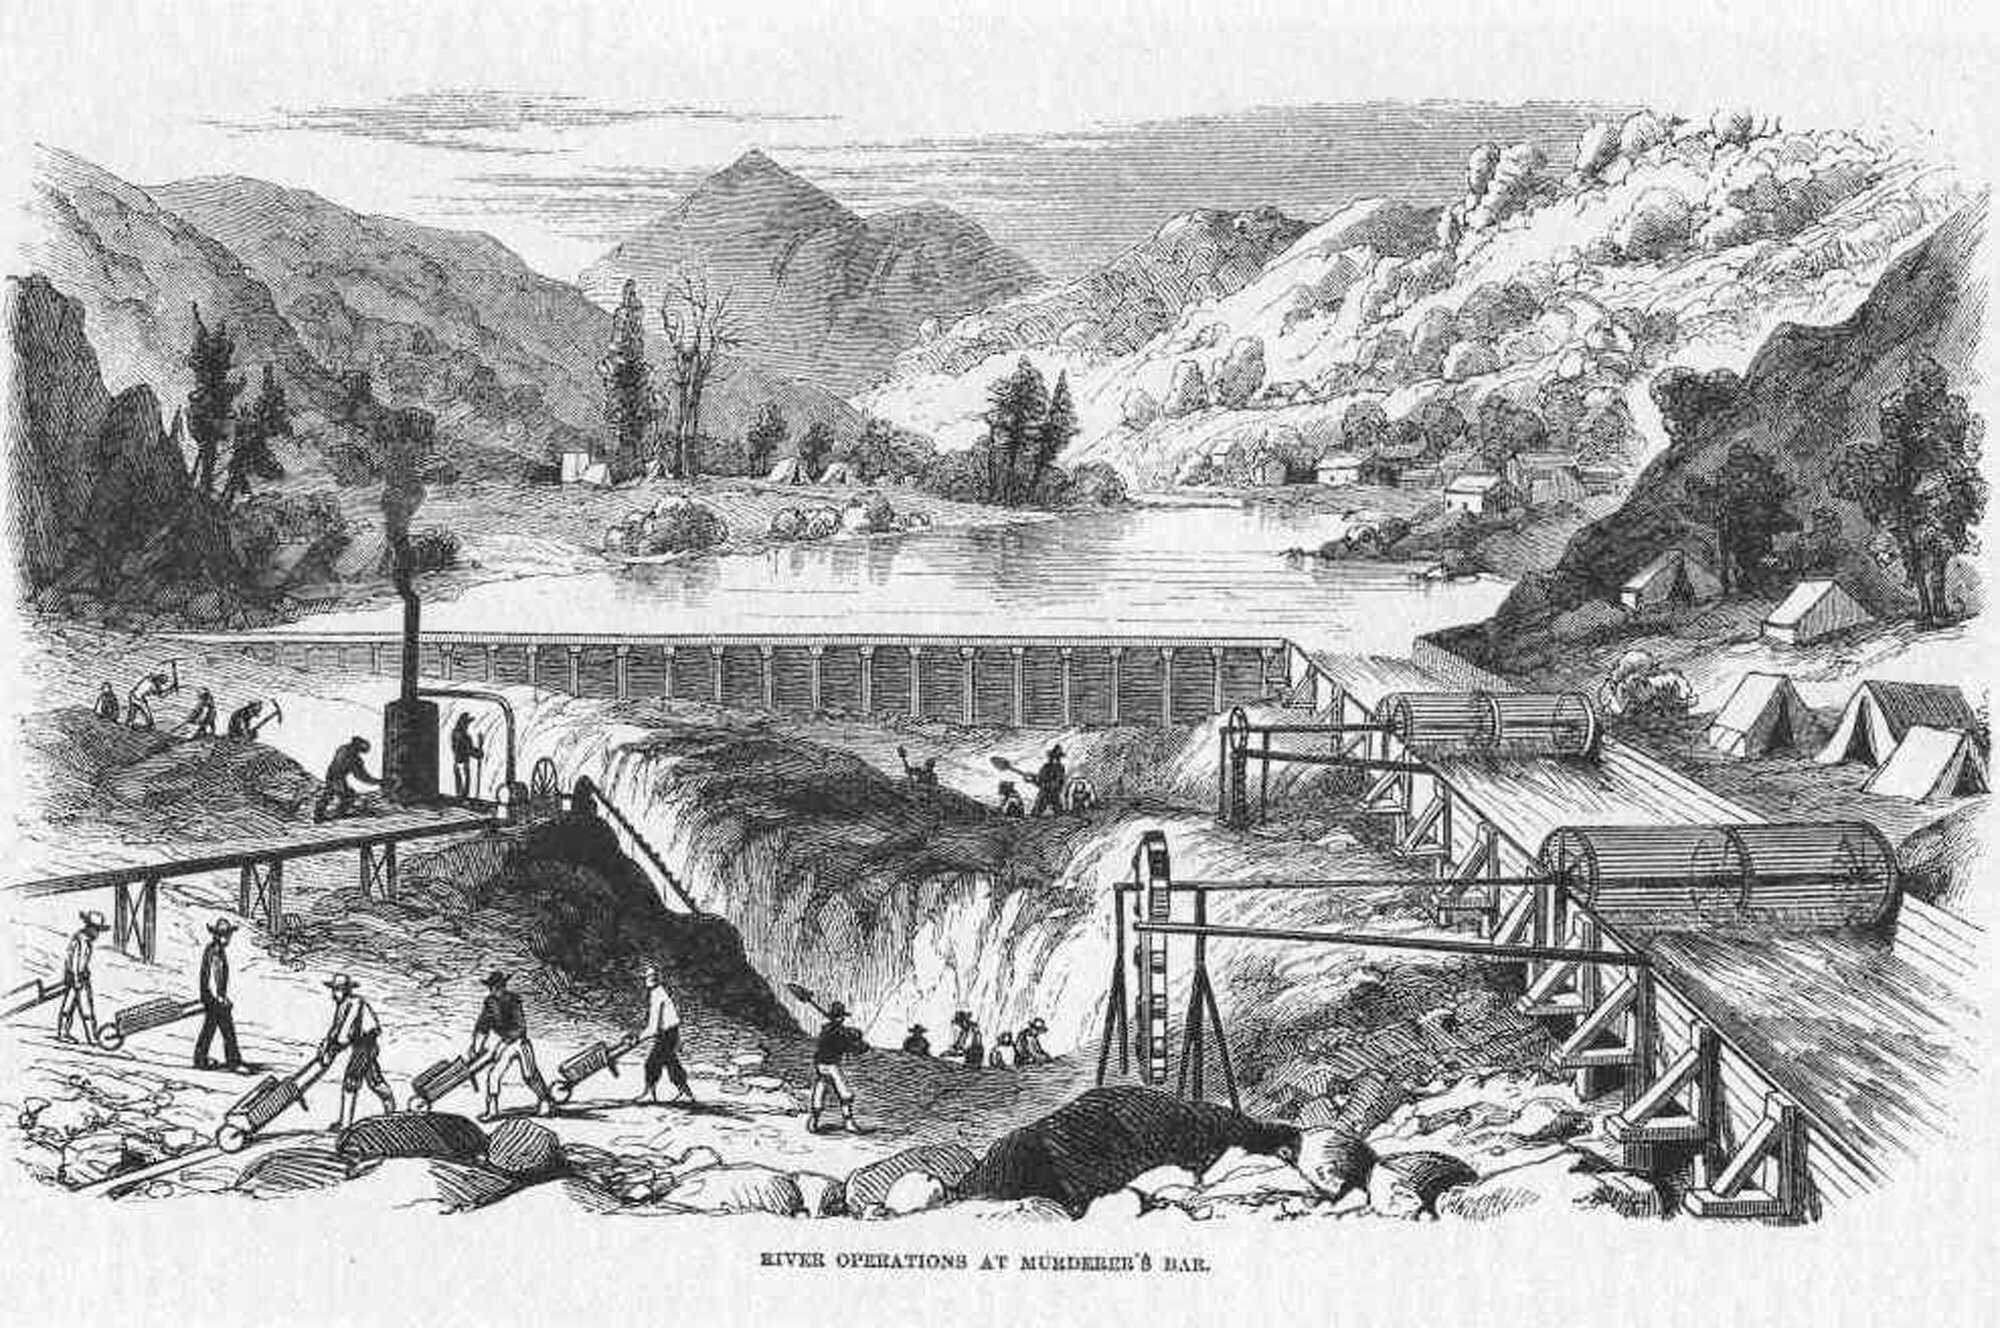 Goldrush_California_Landscape_seeking_river_operations_California.jpg